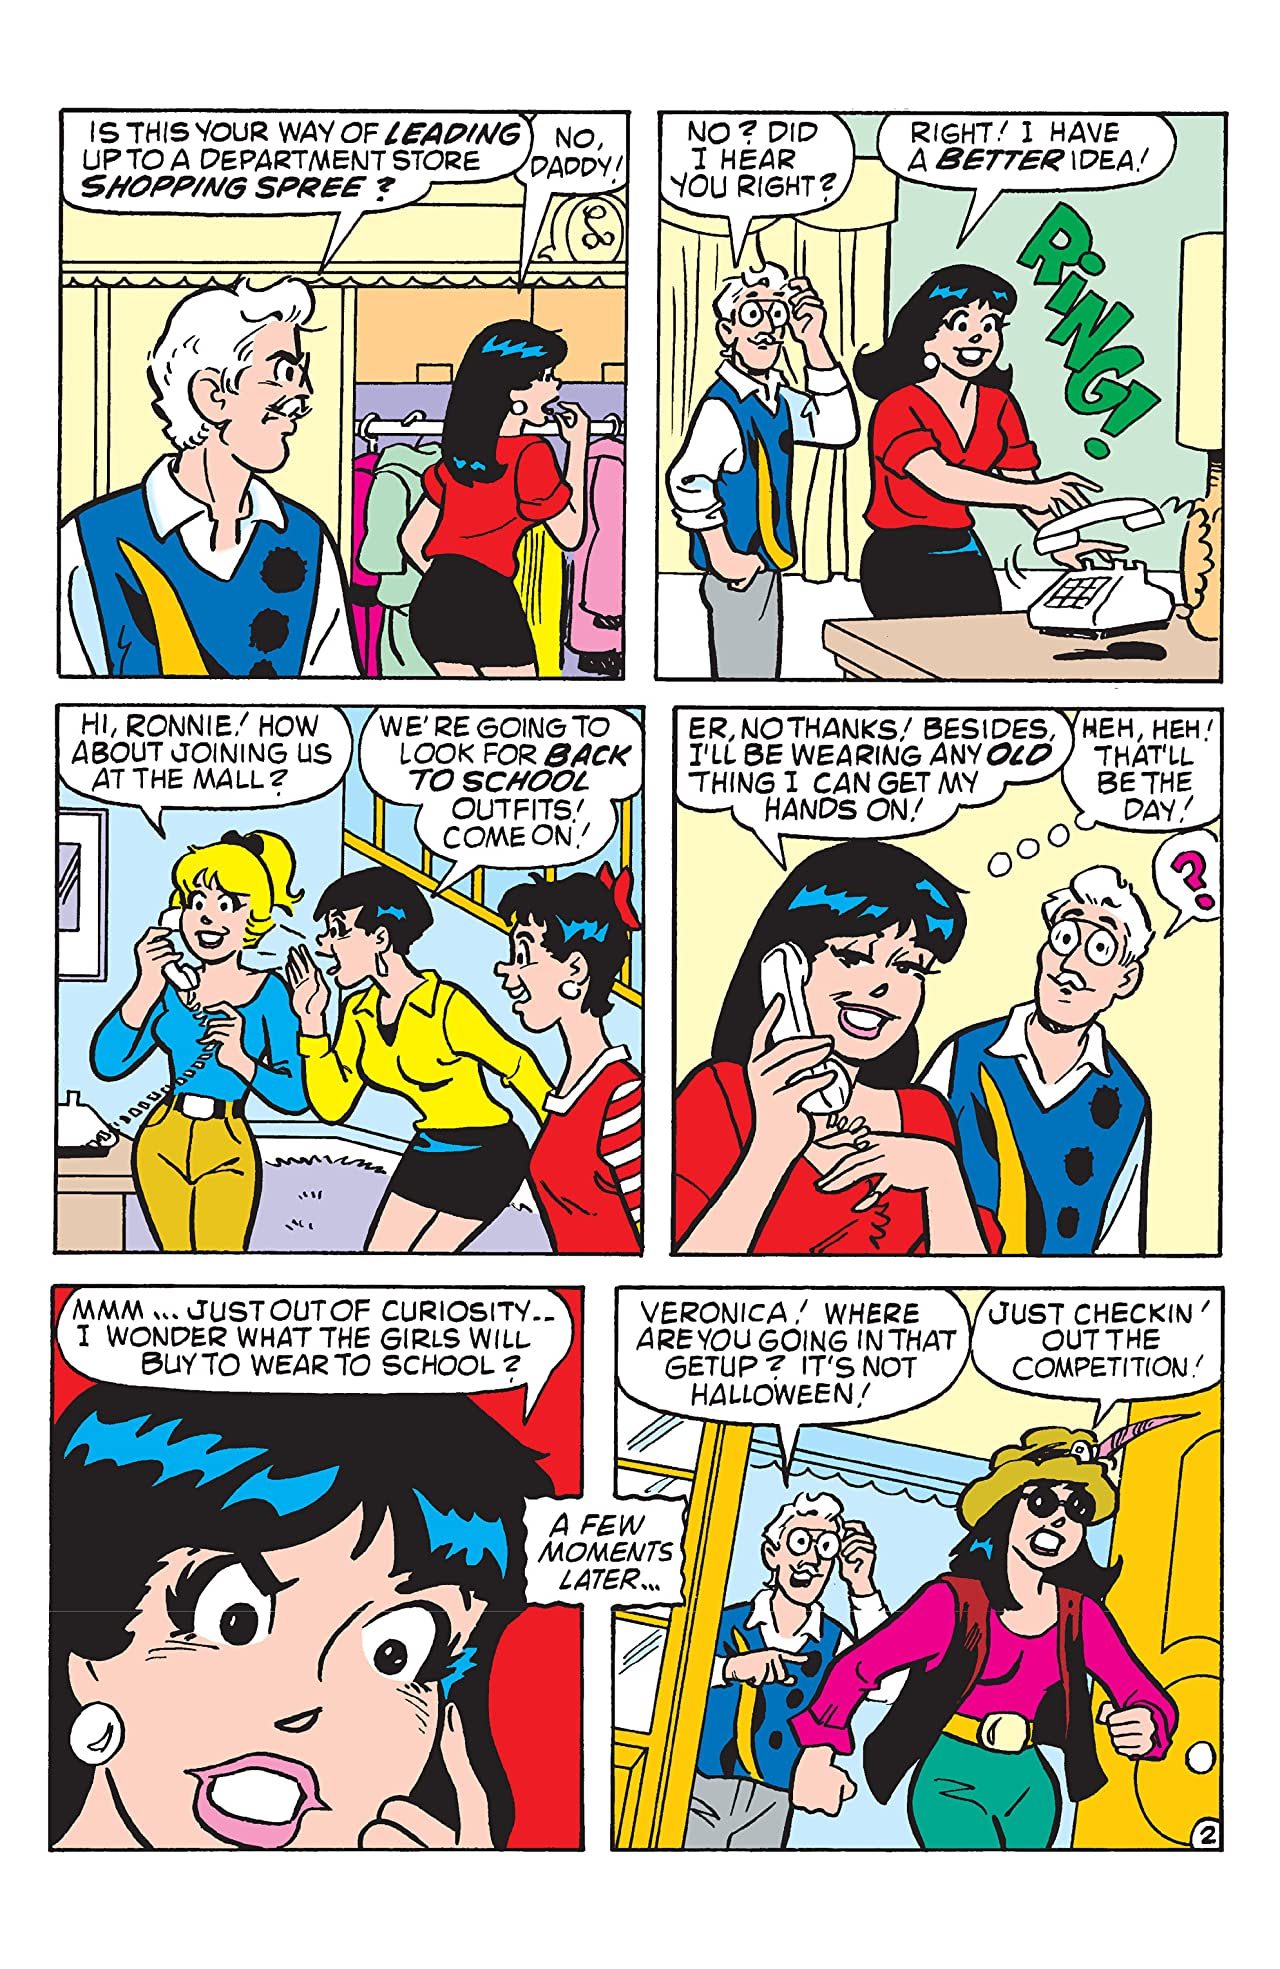 PEP Digital #104: Veronica's Hot Fashions